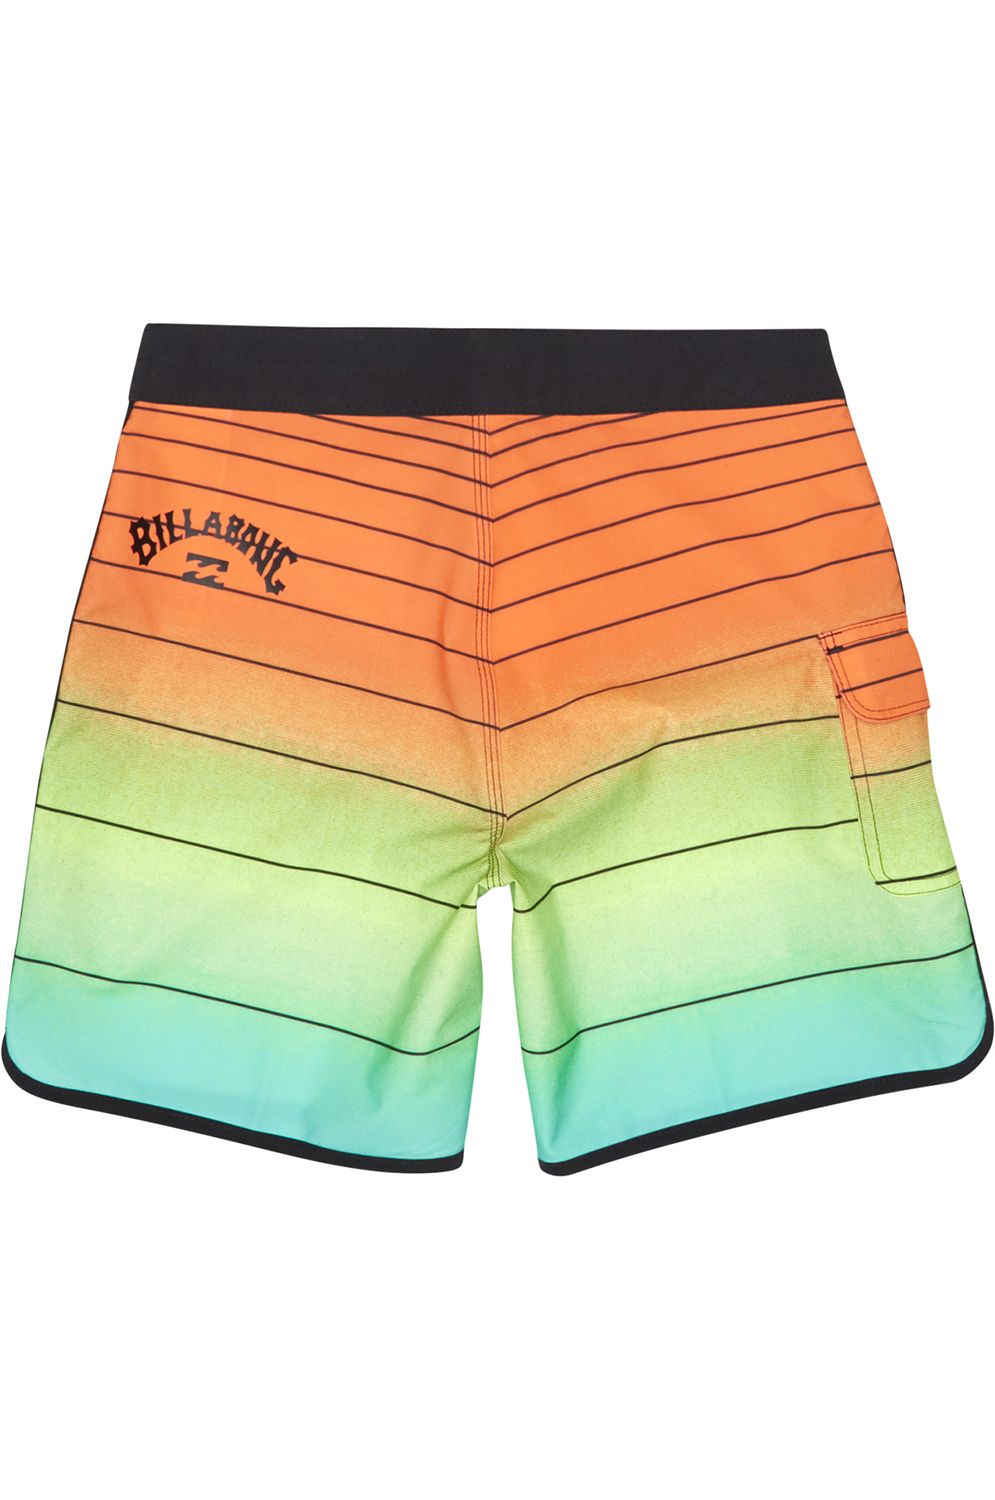 Boardshorts Billabong 73 STRIPPE PRO BOY Neon Orange